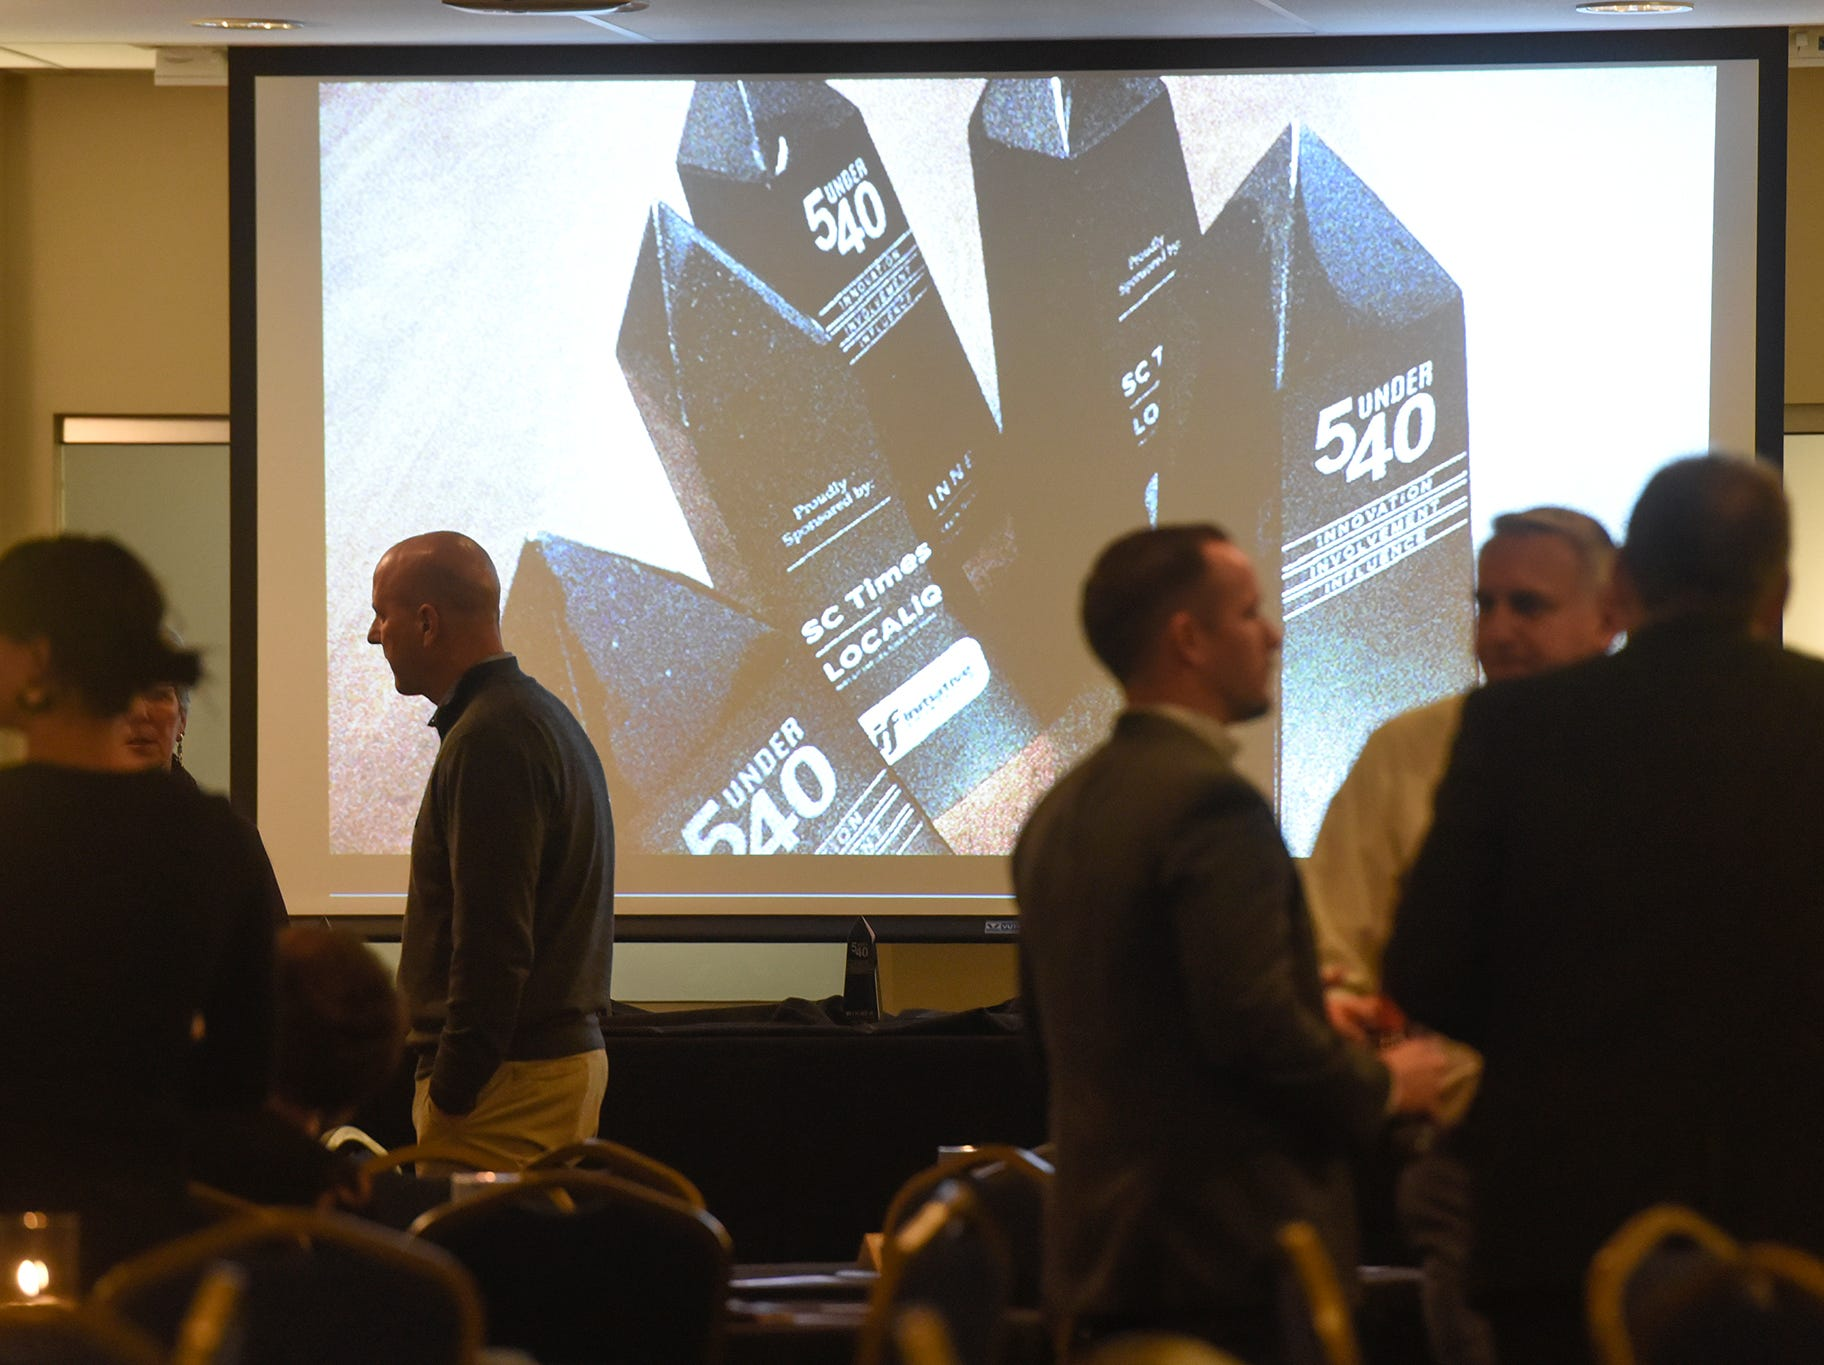 People get ready for the 5 Under 40 Awards program to start Tuesday, Jan. 15, in St. Cloud.